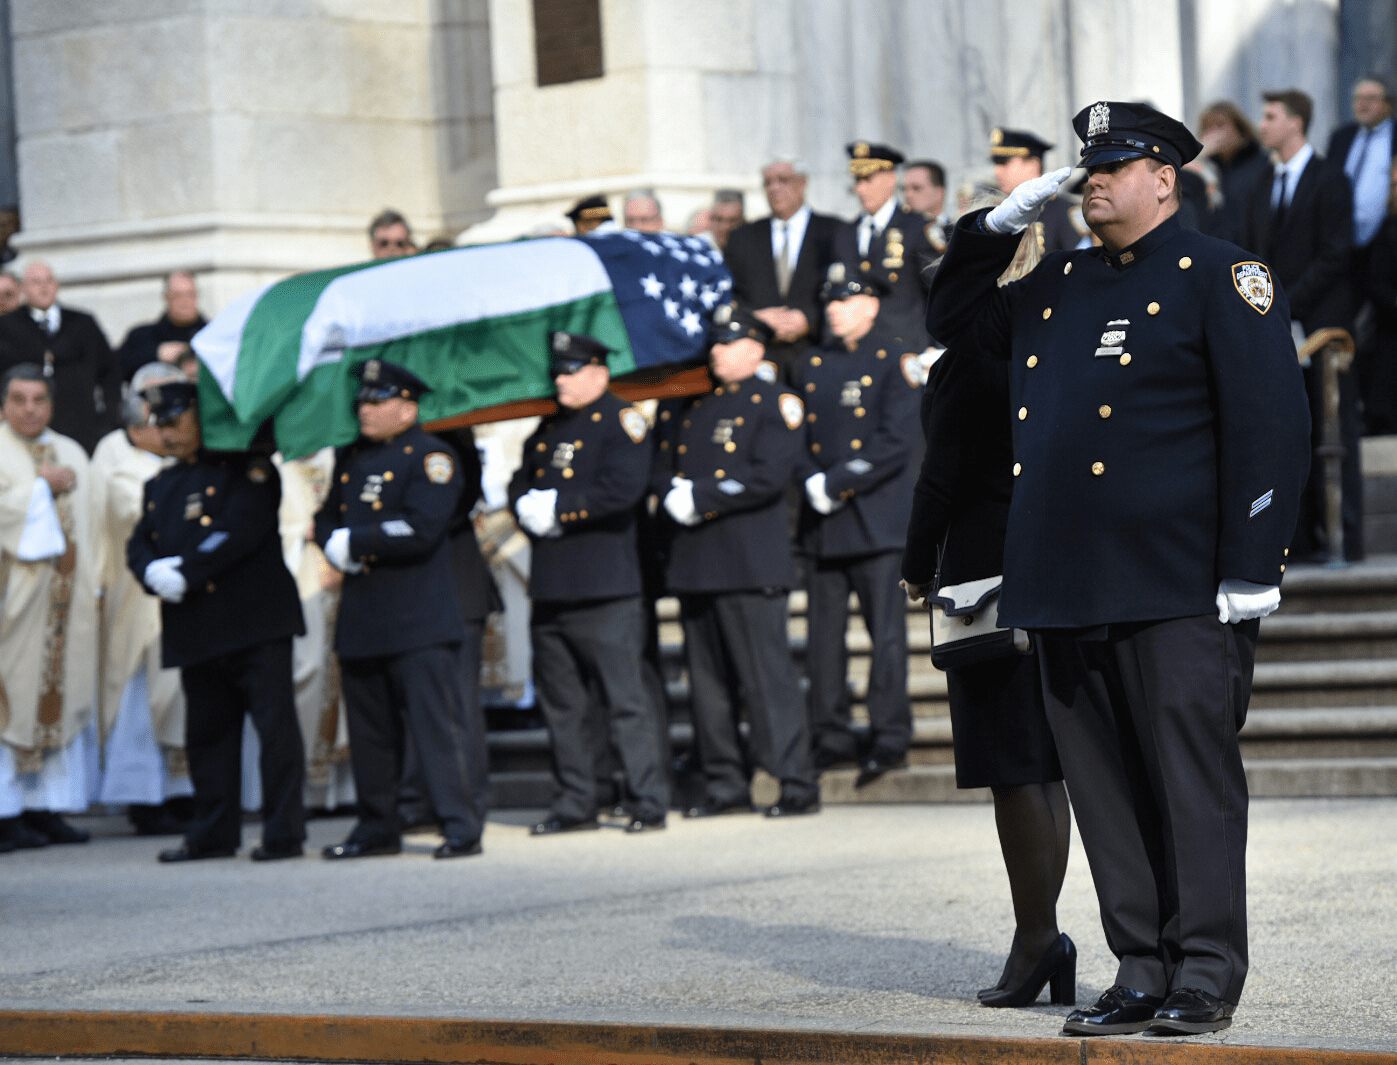 Police Commissioner O'Neill's Eulogy Honoring NYPD Detective